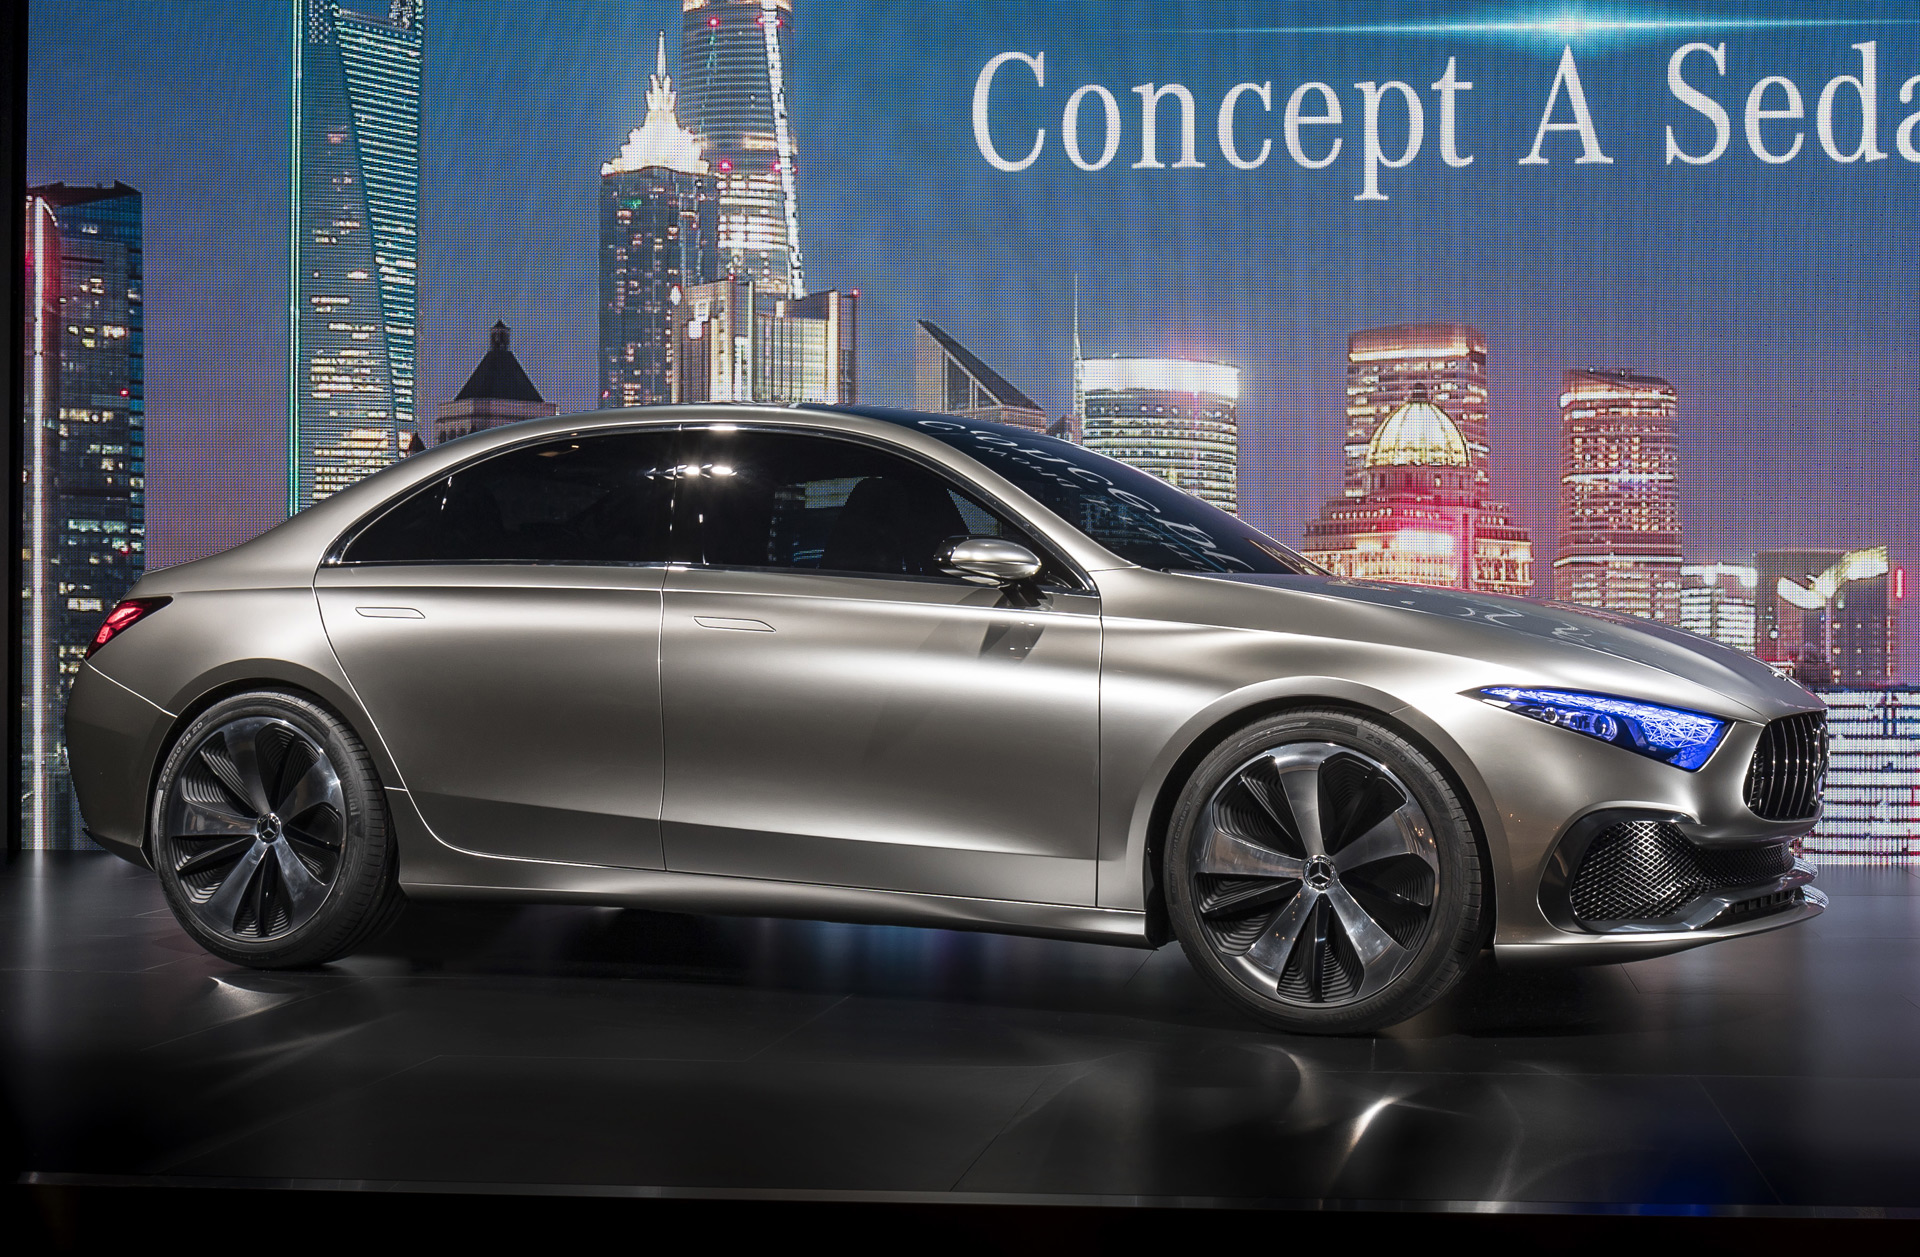 1109977 mercedes Benz A Class Sedan Previewed By Concept In Shanghai on bmw 3 series engine